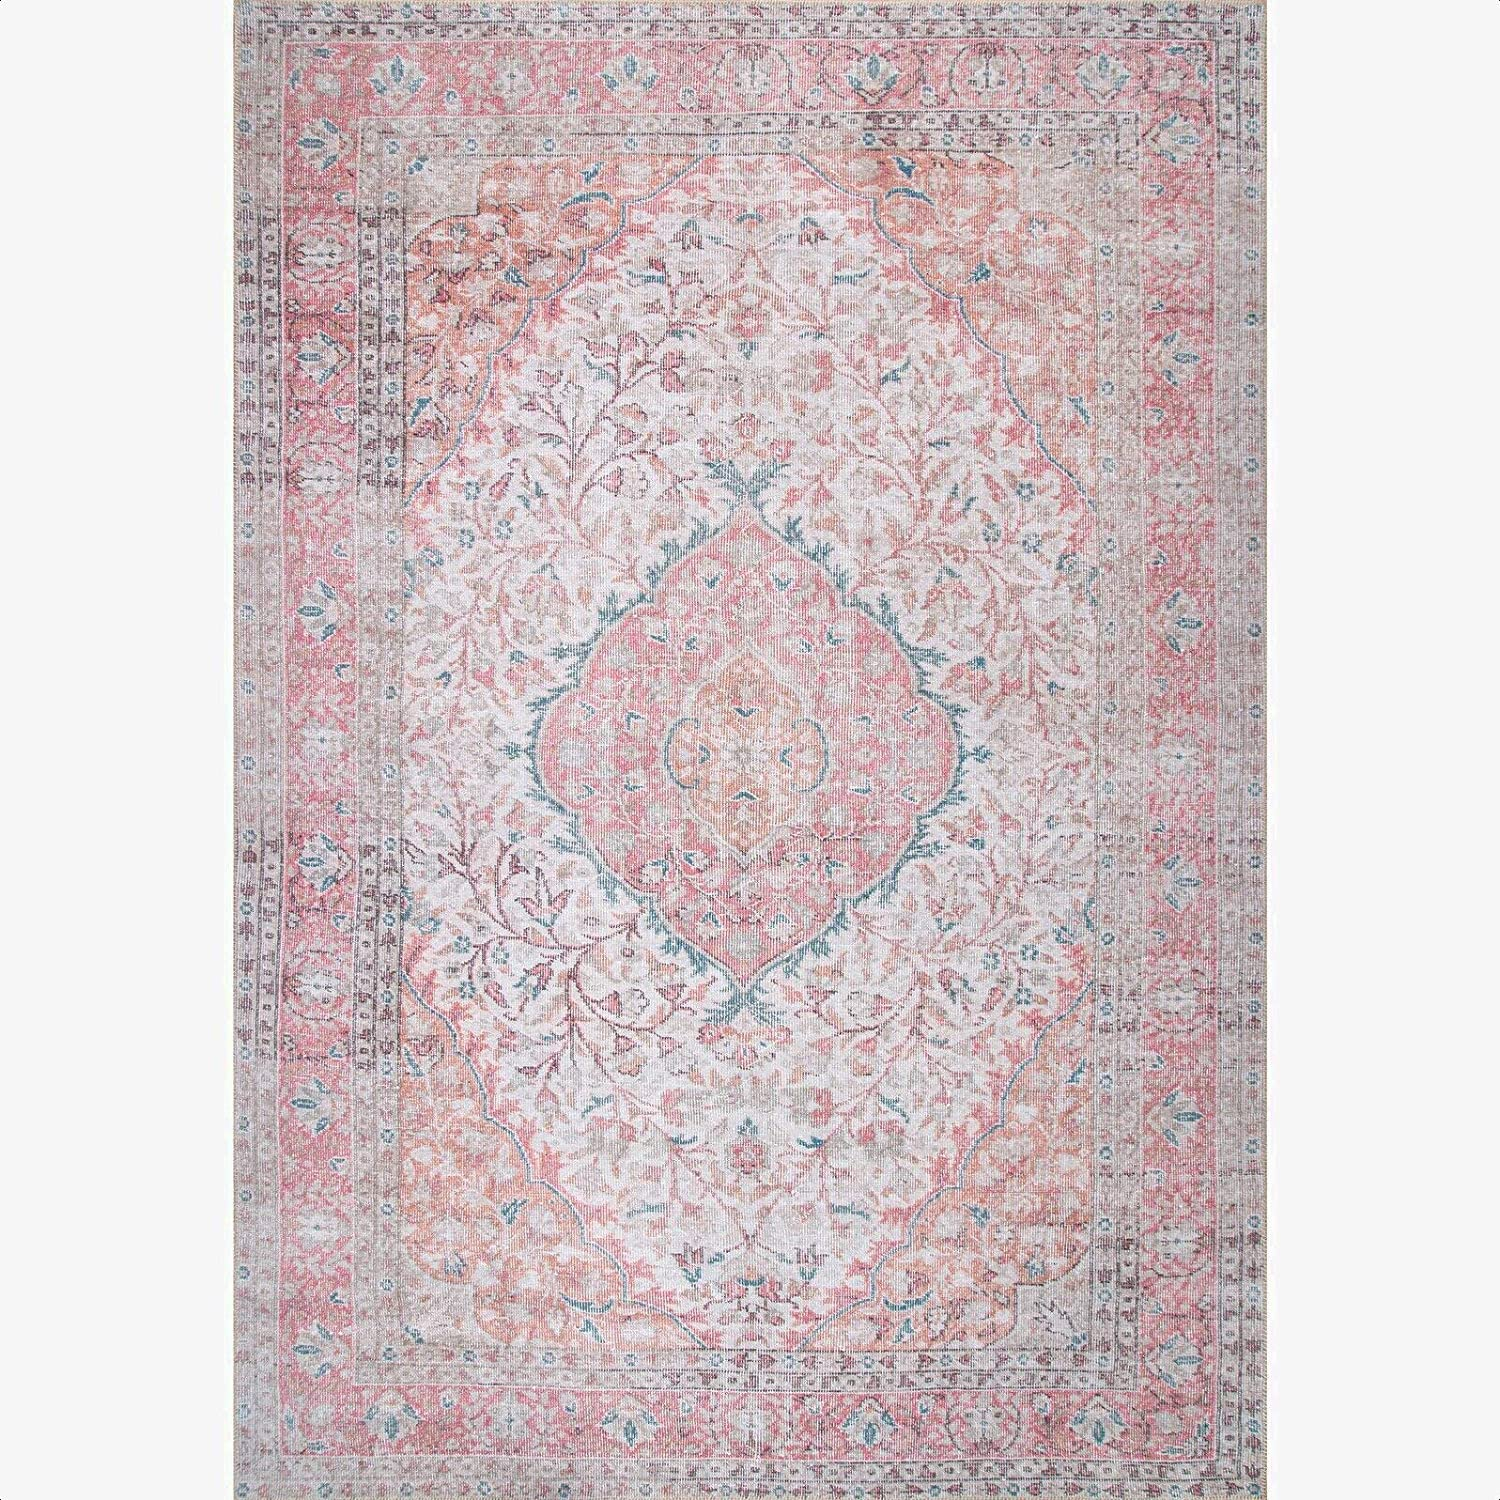 Waldrop Pink Area Rug Material Polyester Country Of Origin Turkey Kitchen Dining